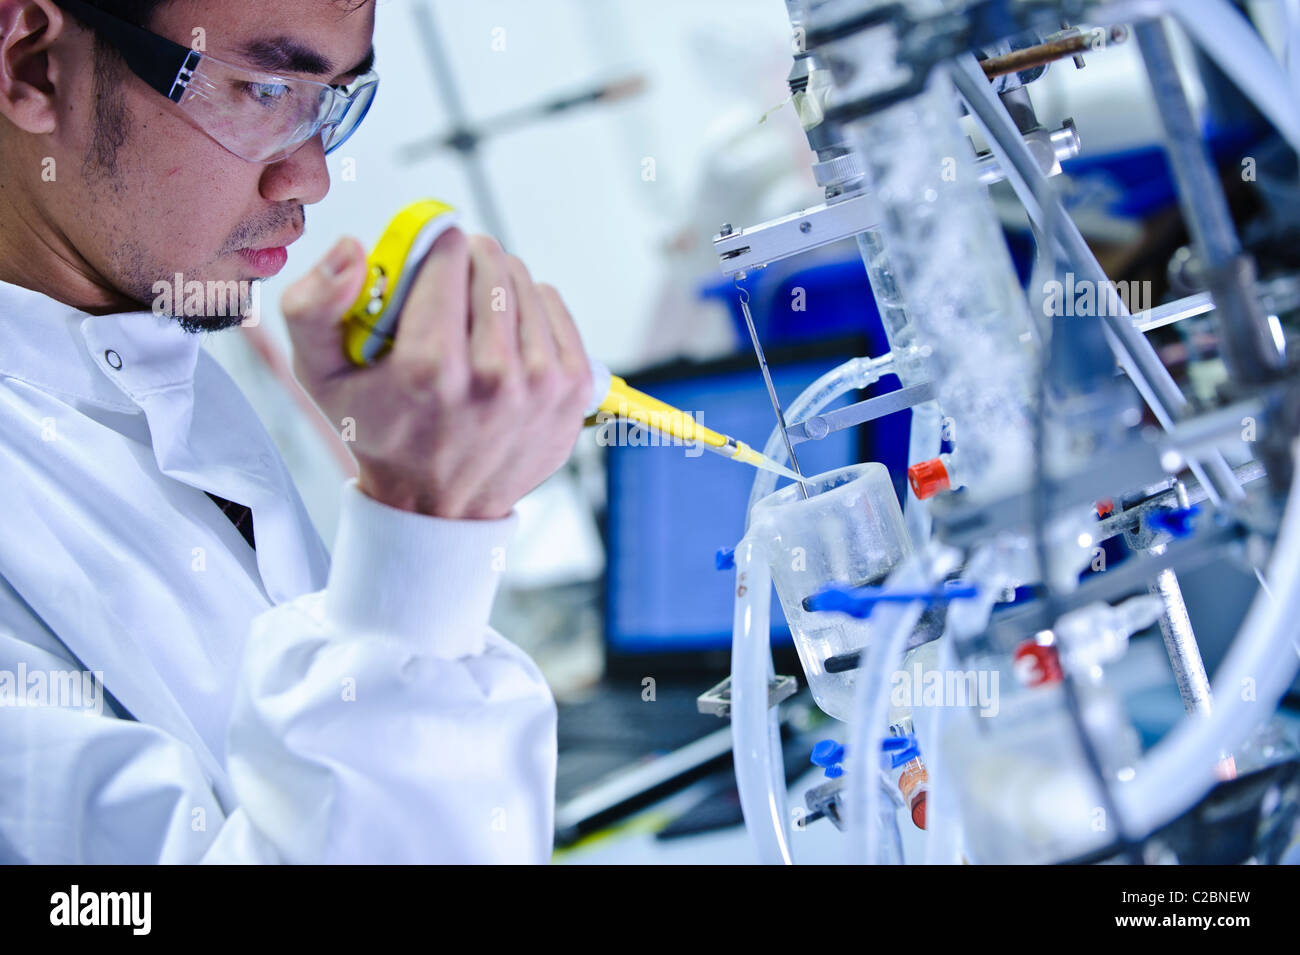 Young Asian male scientist wearing clear goggles and white science coat looking at glass tube apparatus in science - Stock Image